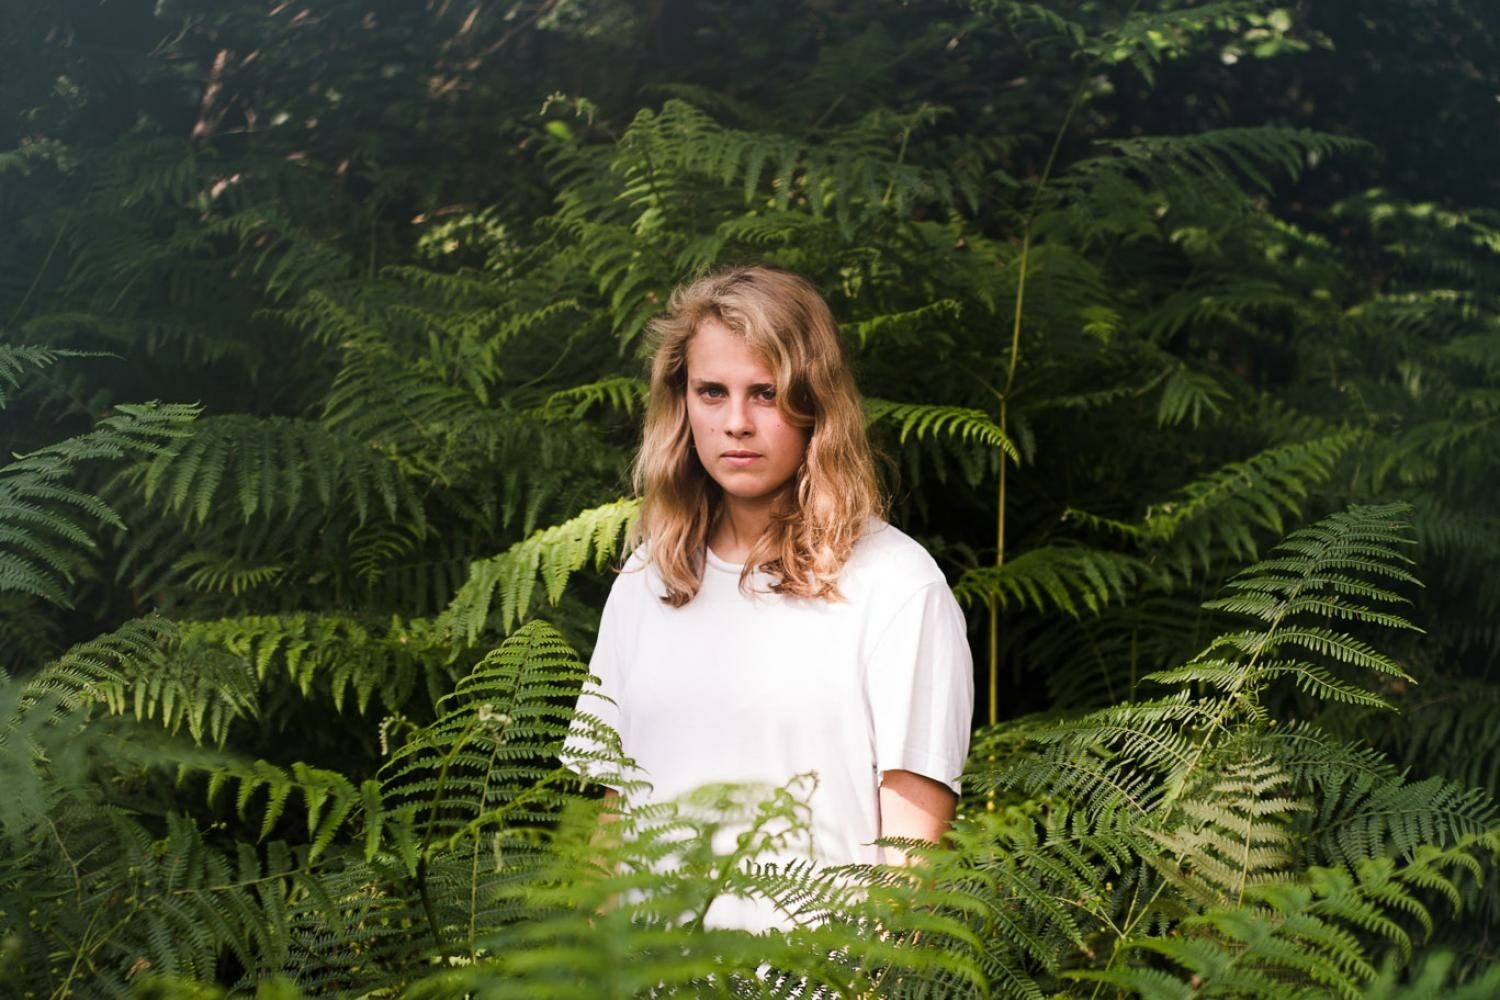 Marika Hackman previews new album with the stunning 'Animal Fear'